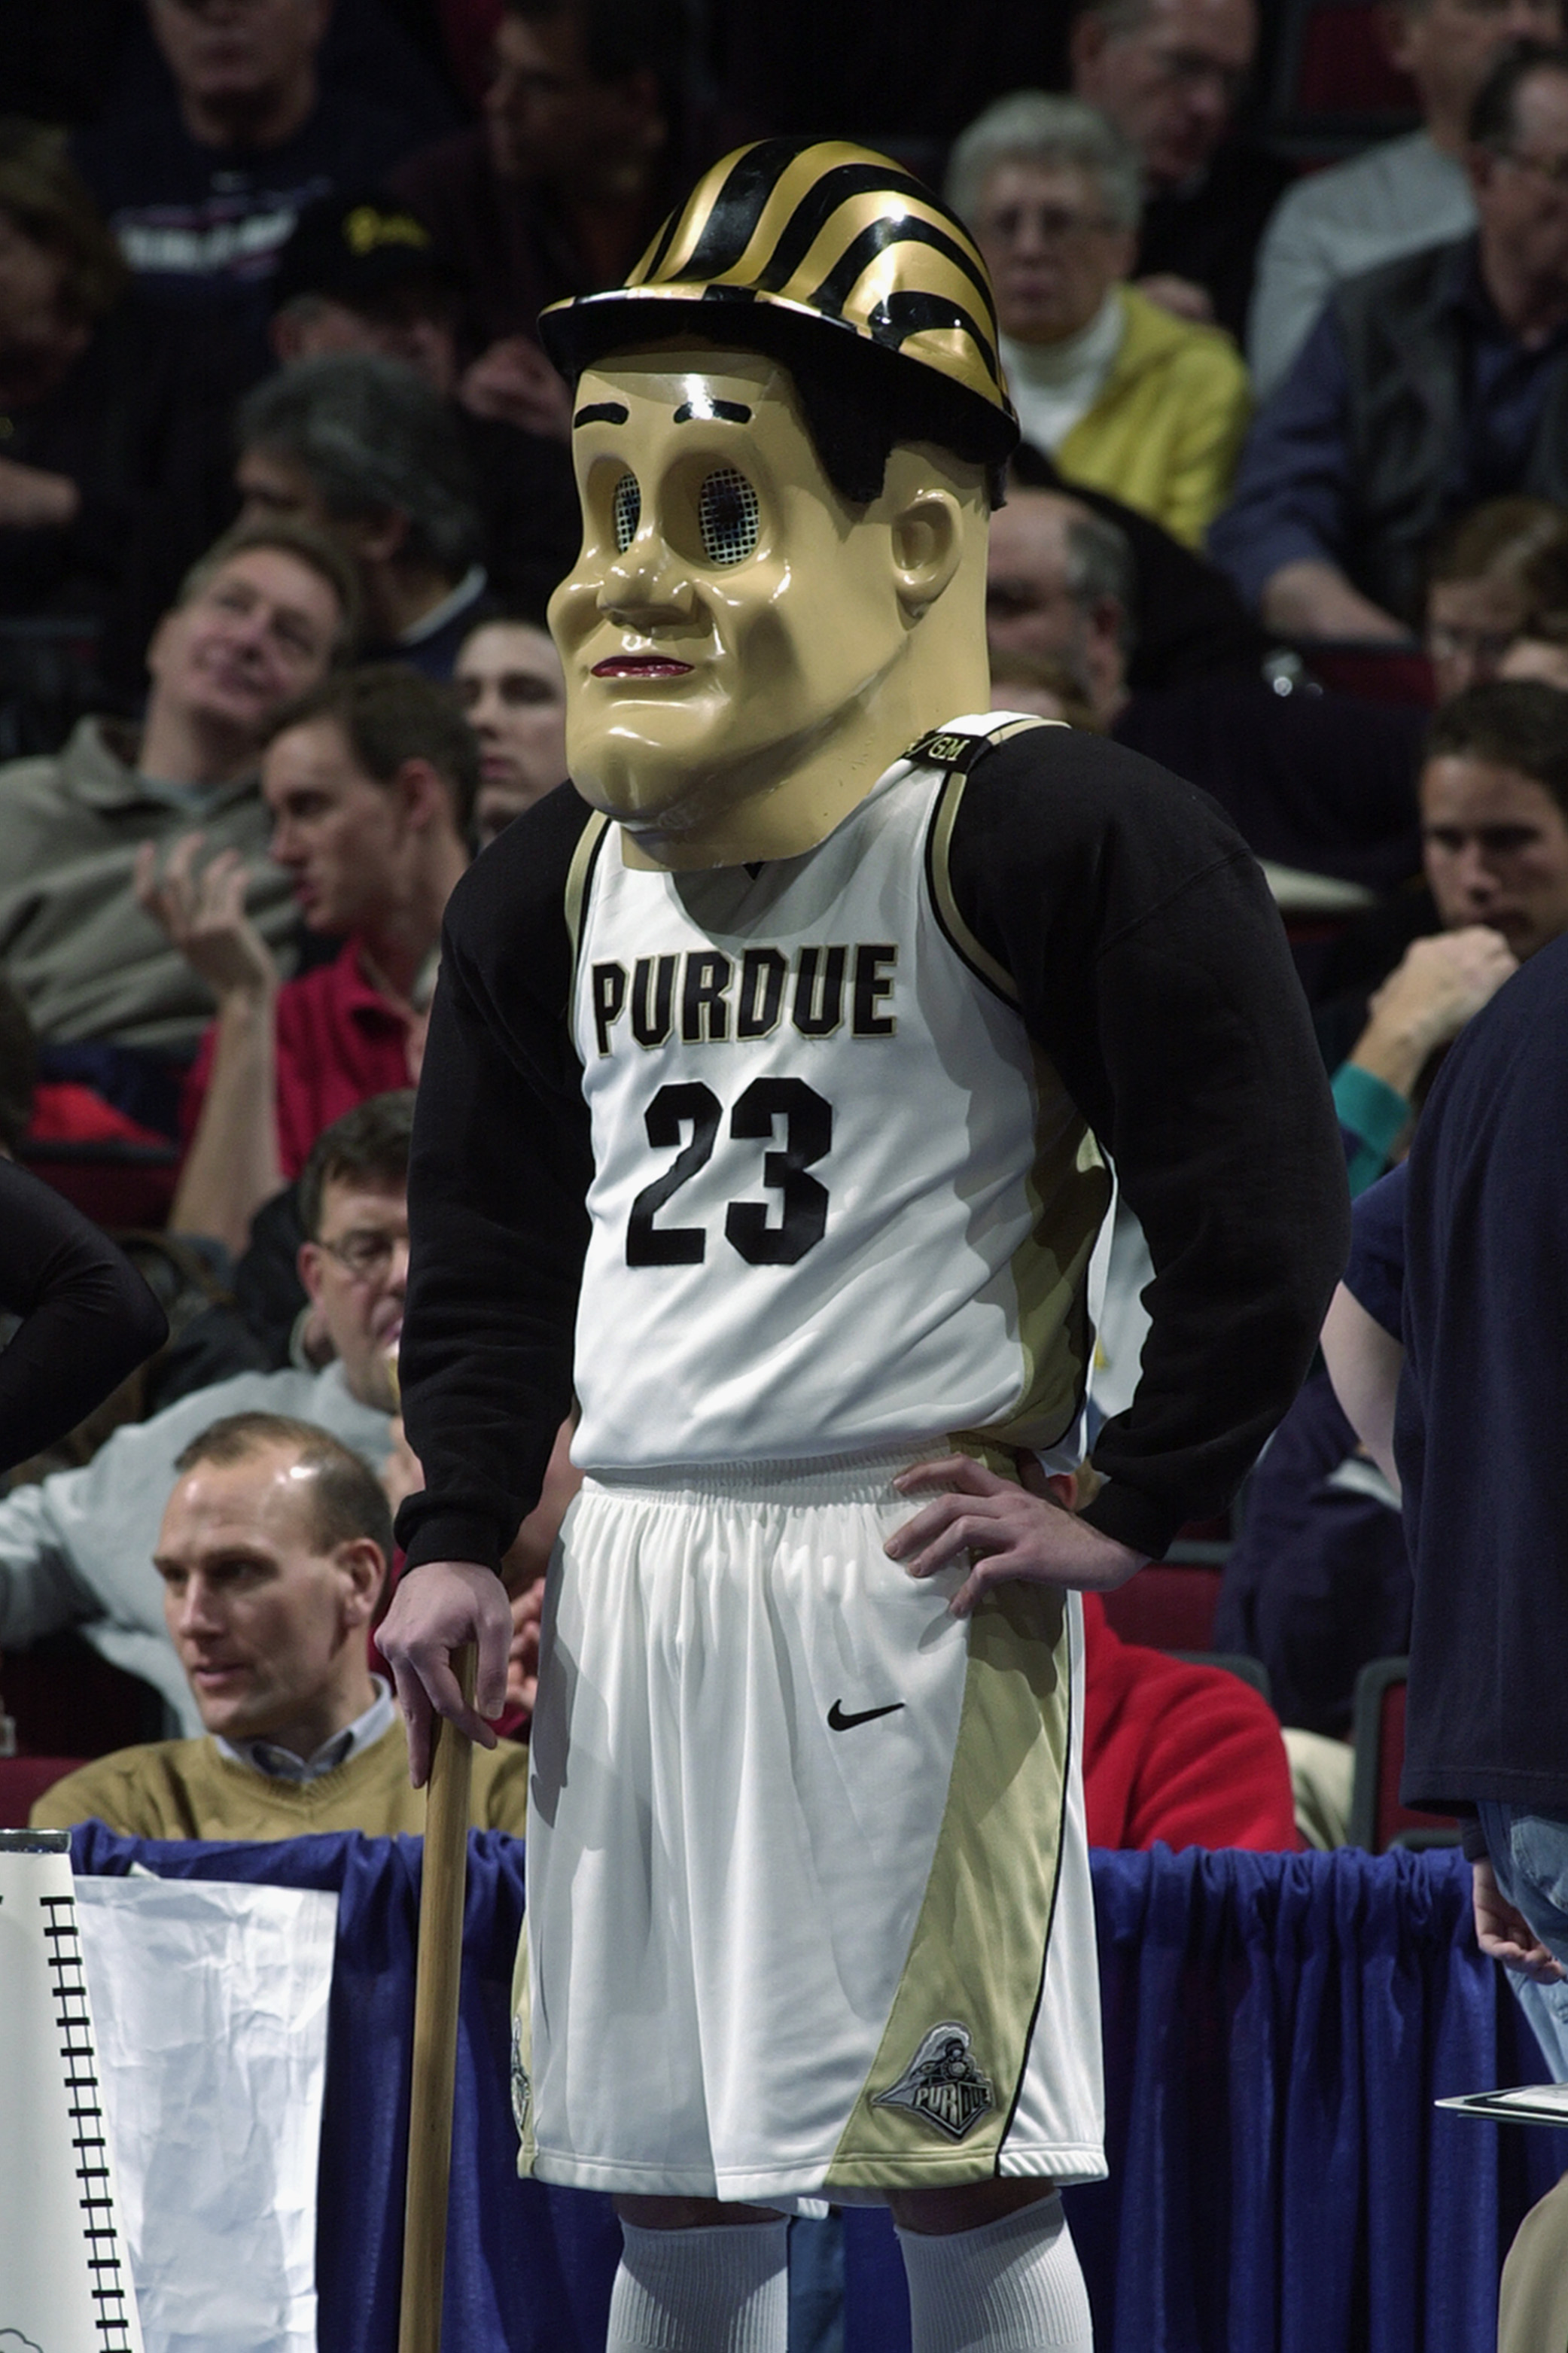 CHICAGO - MARCH 13:  The mascot for Purdue University entertains fans during the Big Ten Men's Basketball Tournament game between the Michigan State University Spartans and the Purdue University Boilermakers at the United Center on March 14, 2003 in Chica